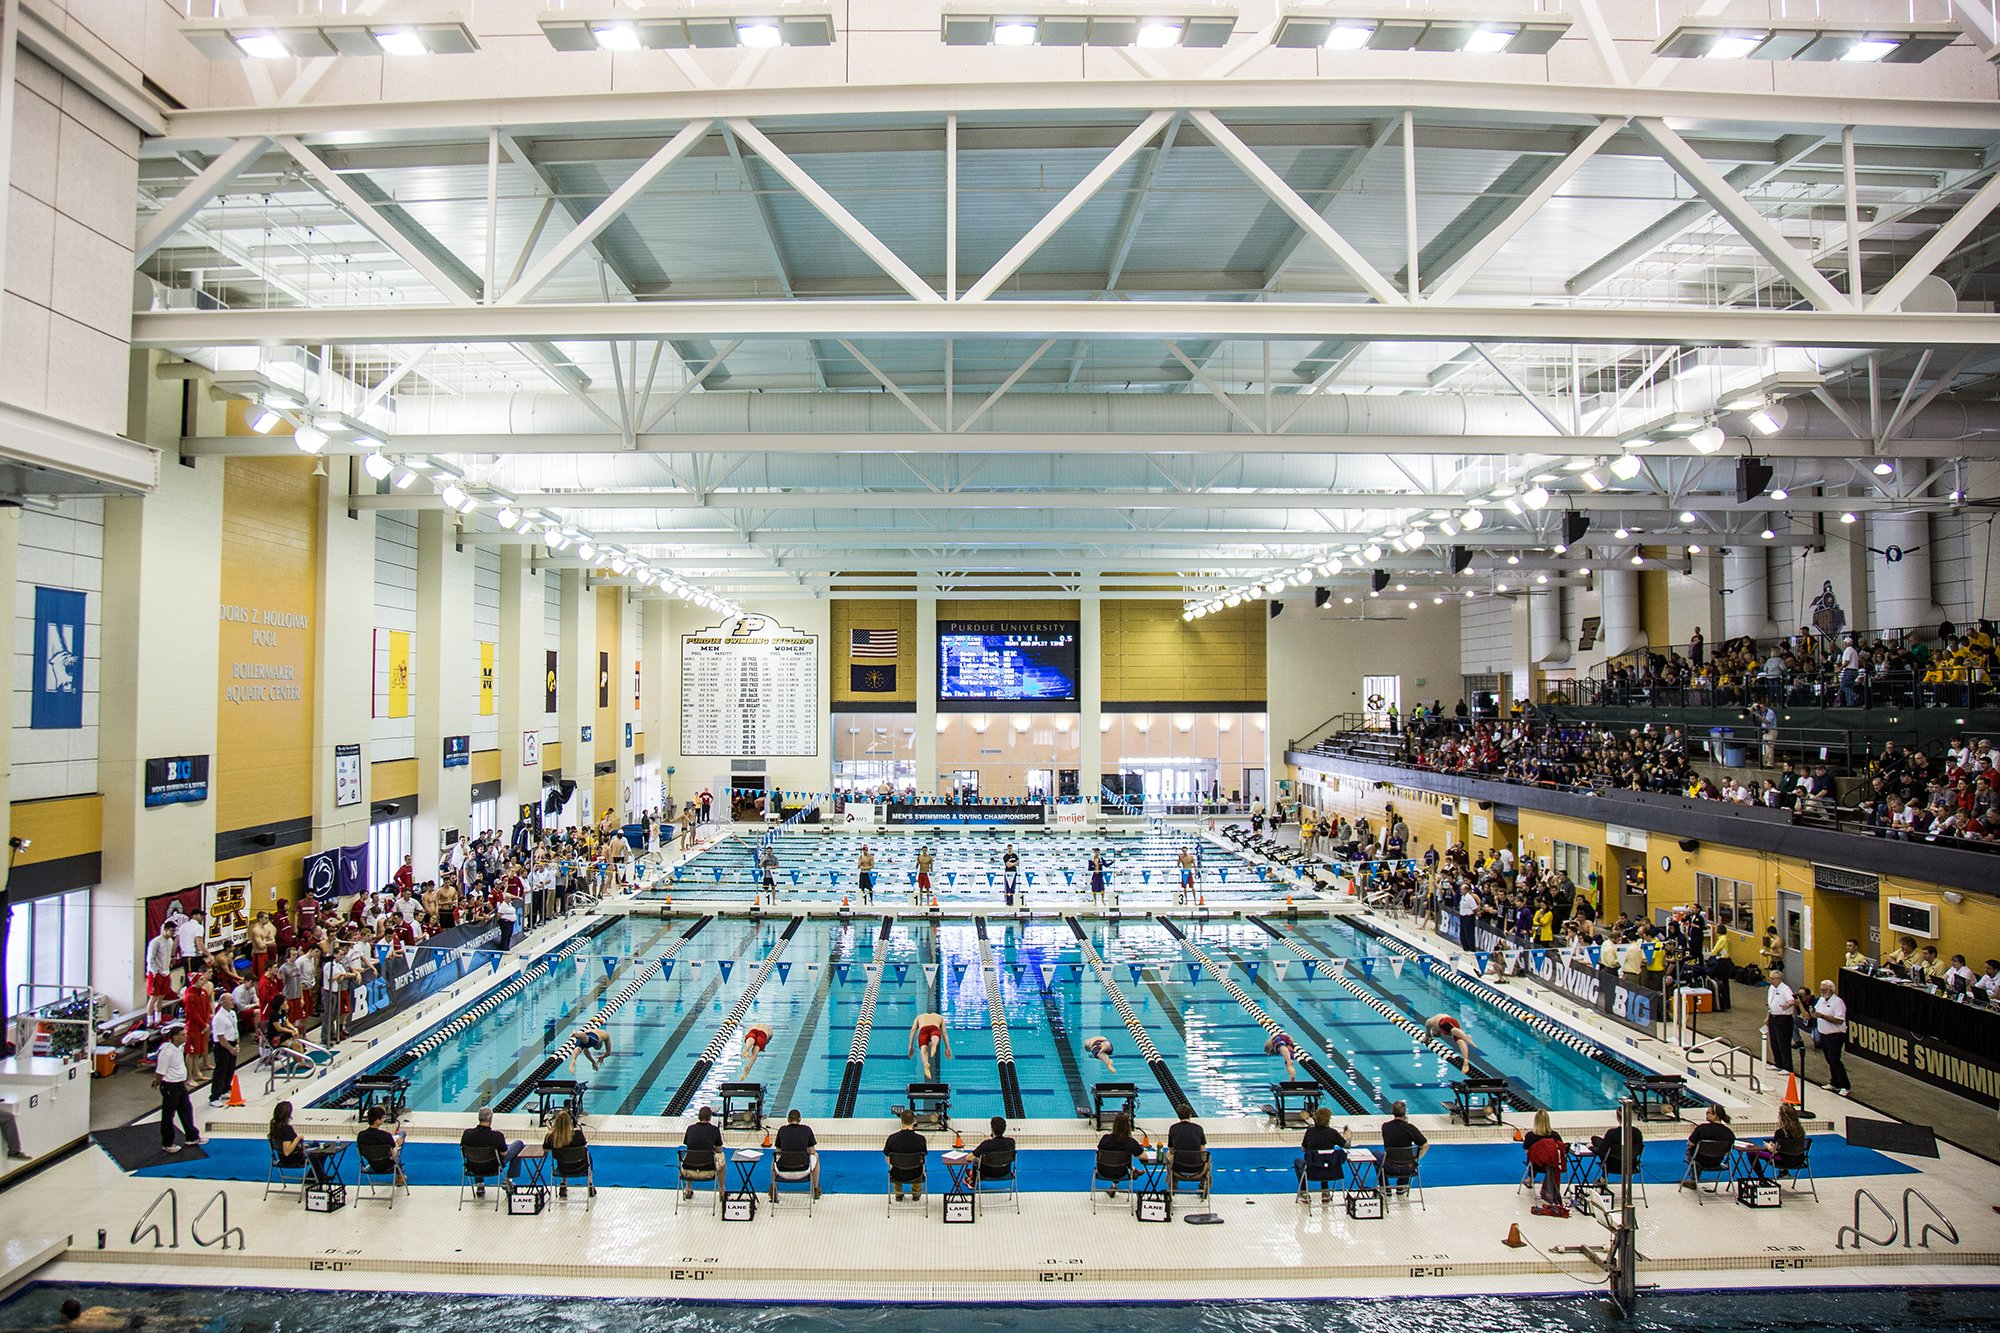 Purdue Swim Dive On Twitter Scenes From Thursday Prelims At Big Tens Courtesy Of Photographer